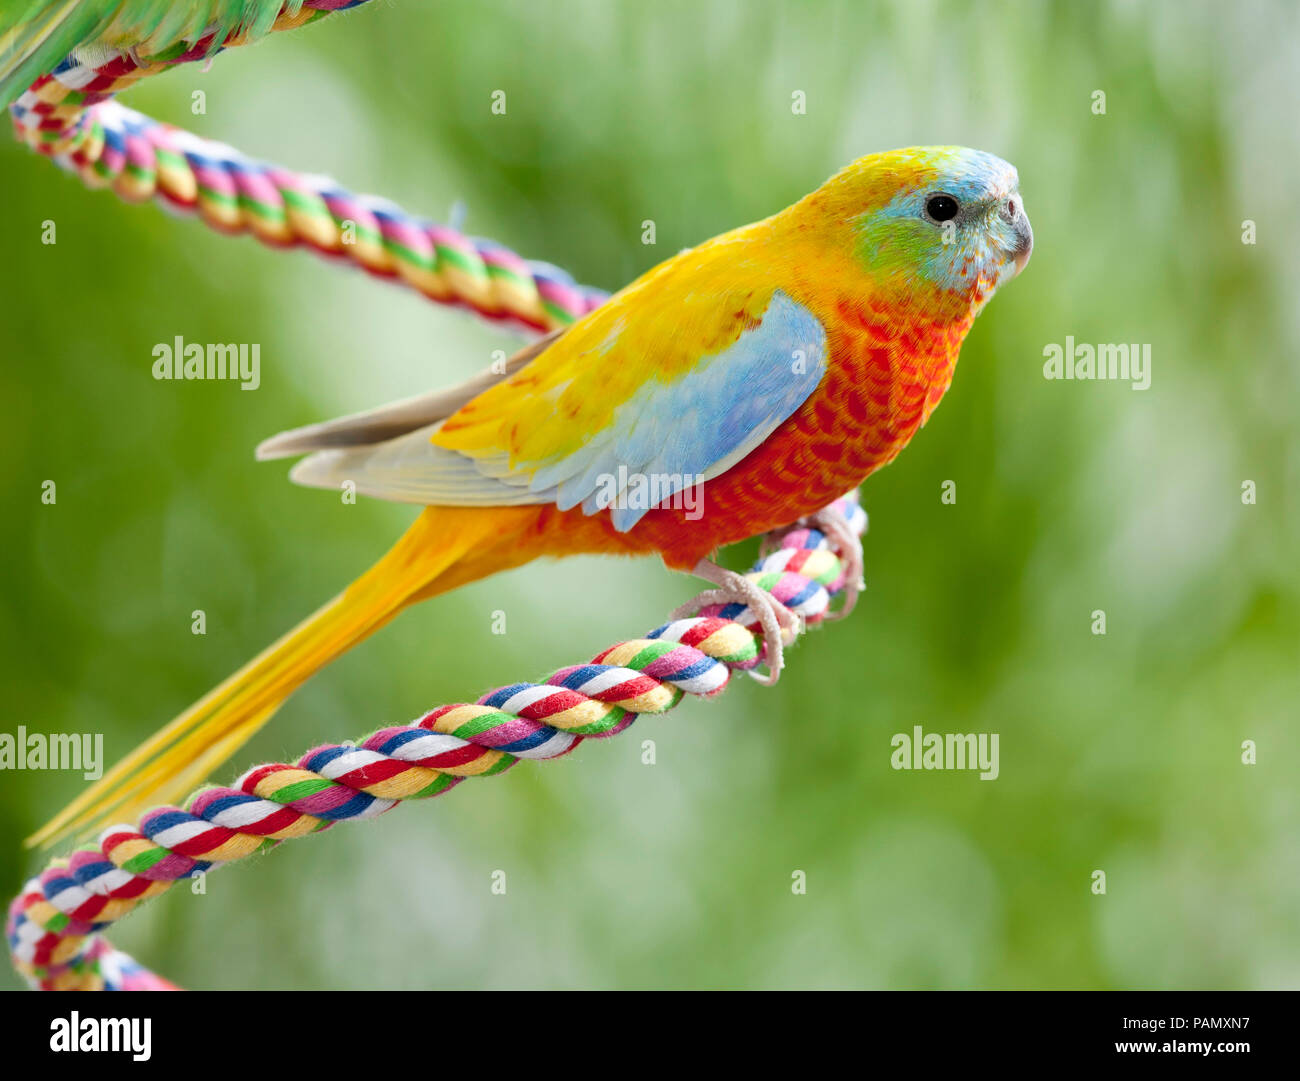 Turquoise Parrot (Neophema pulchella). Adult bird perched on a rope. Germany. - Stock Image